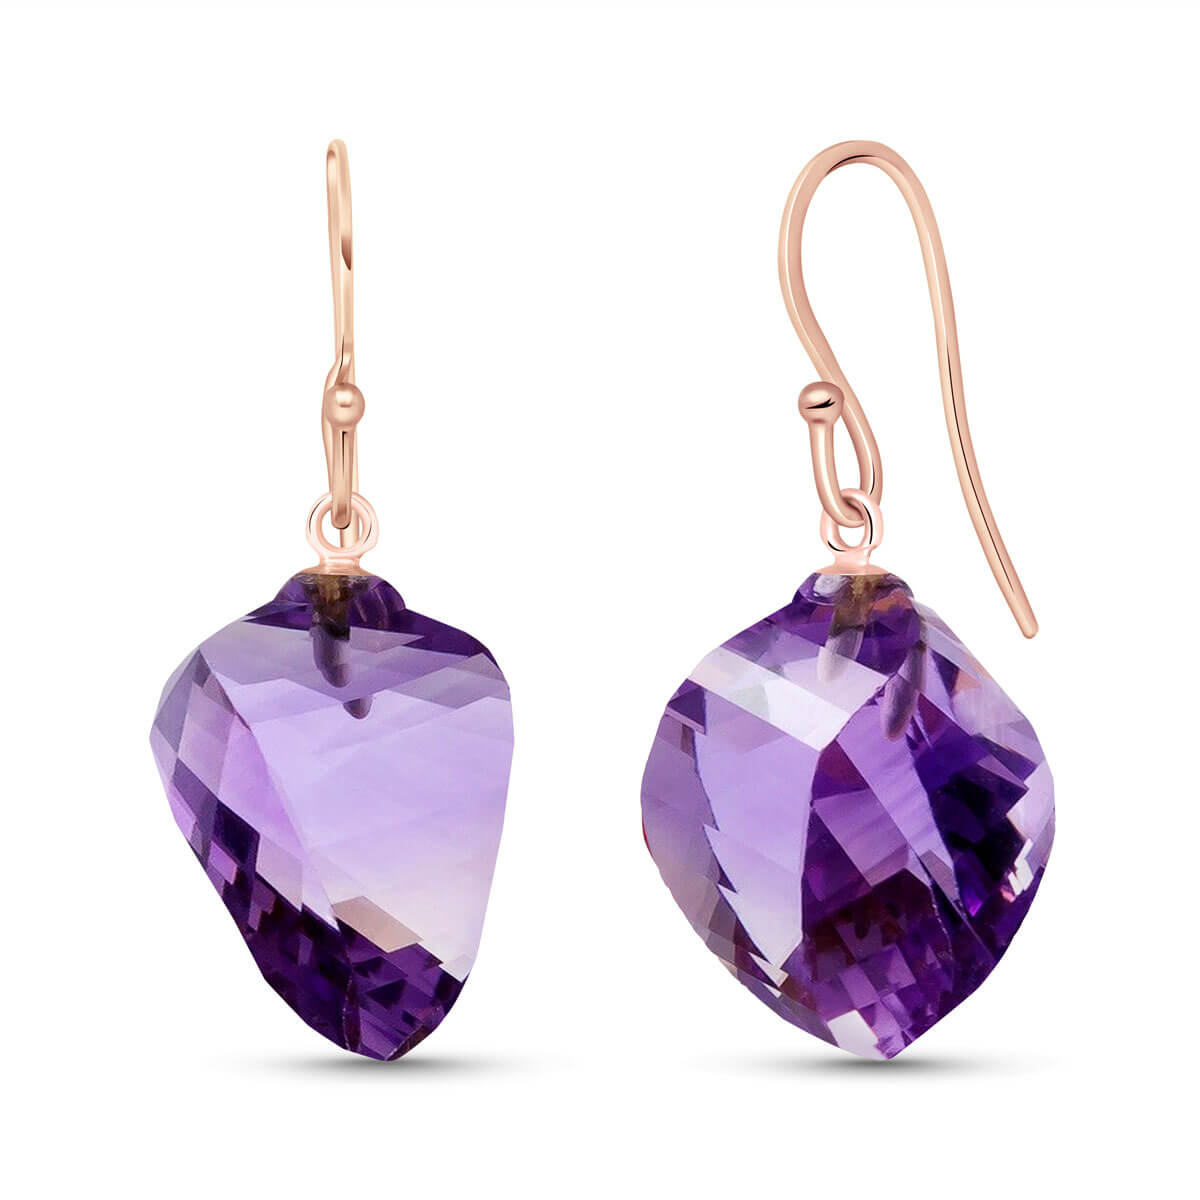 Amethyst Spiral Briolette Drop Earrings 21.5 ctw in 9ct Rose Gold